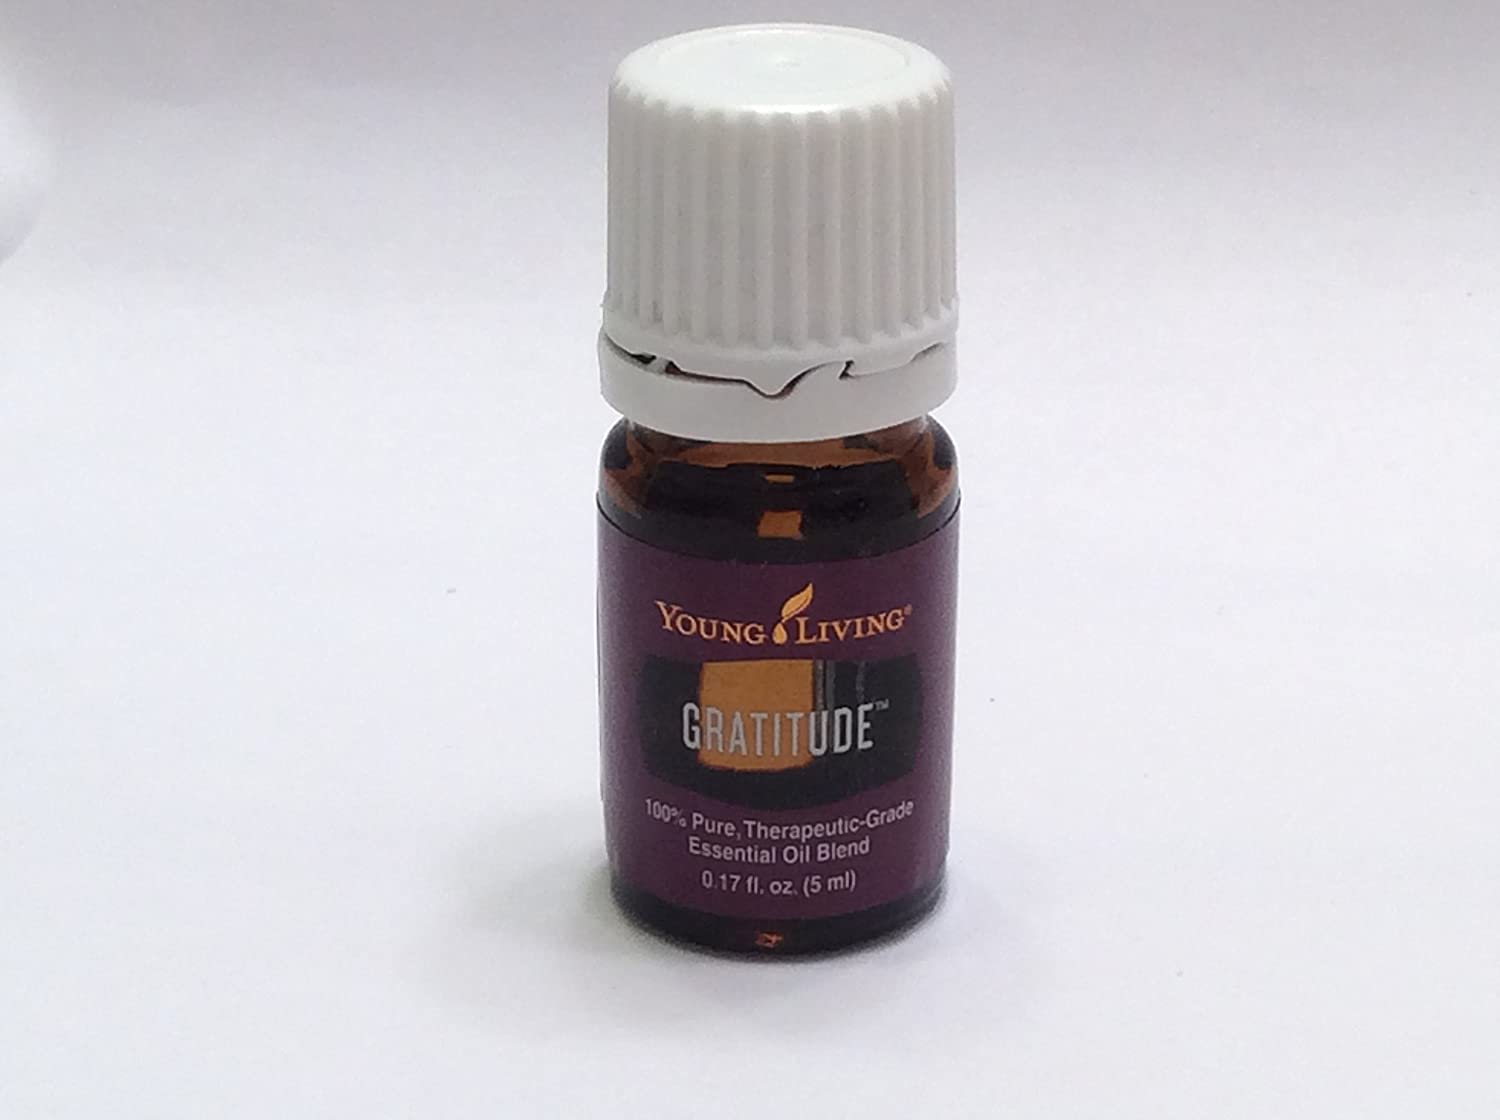 Gratitude by Young Living - 5 ml